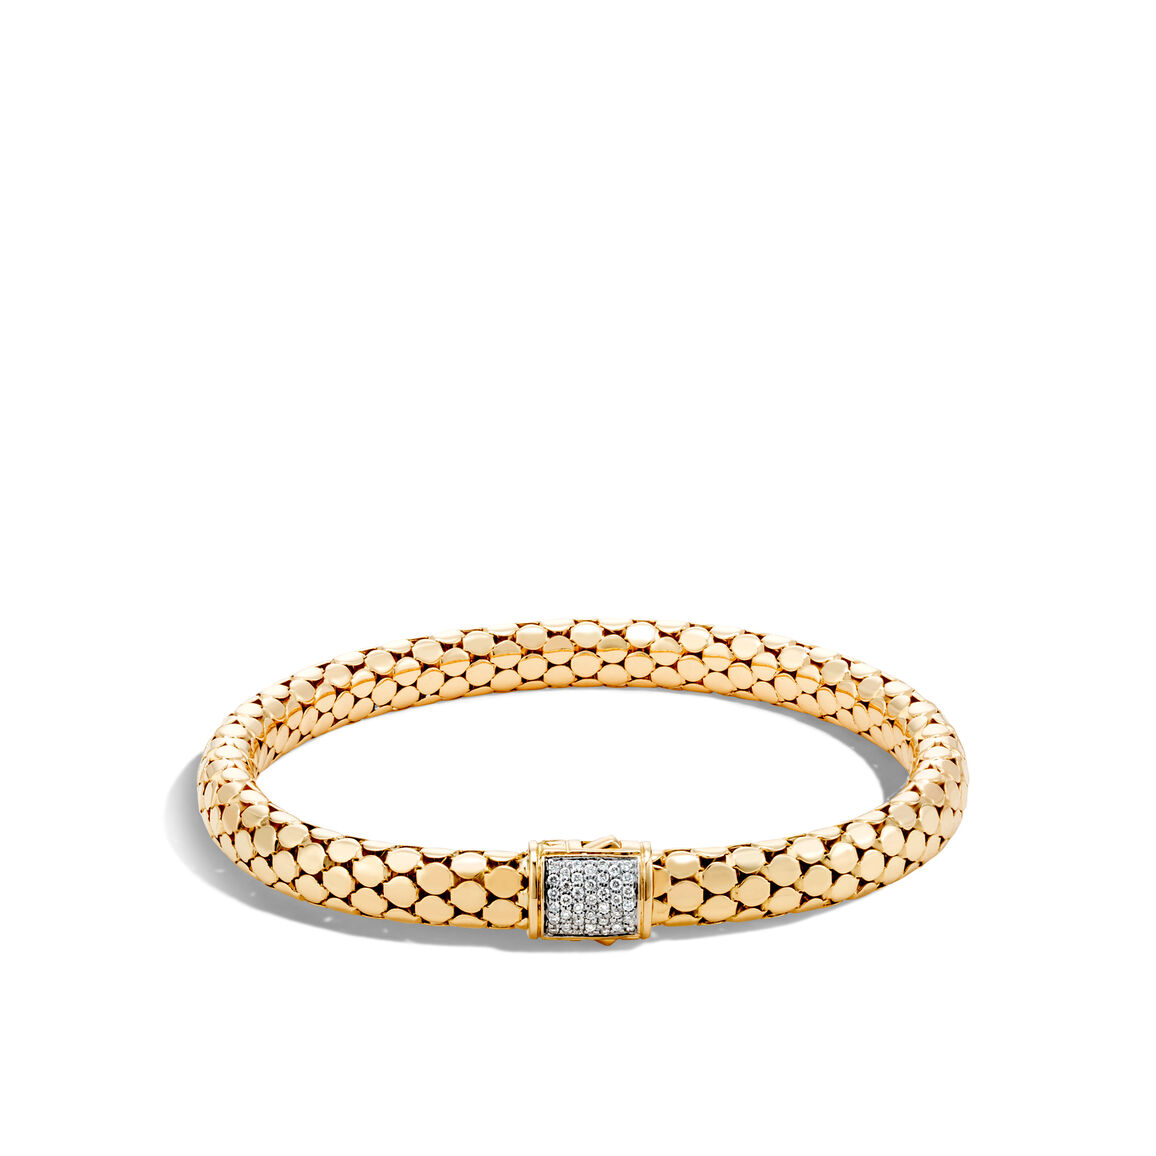 Dot 6.5MM Bracelet in 18K Gold with Diamonds